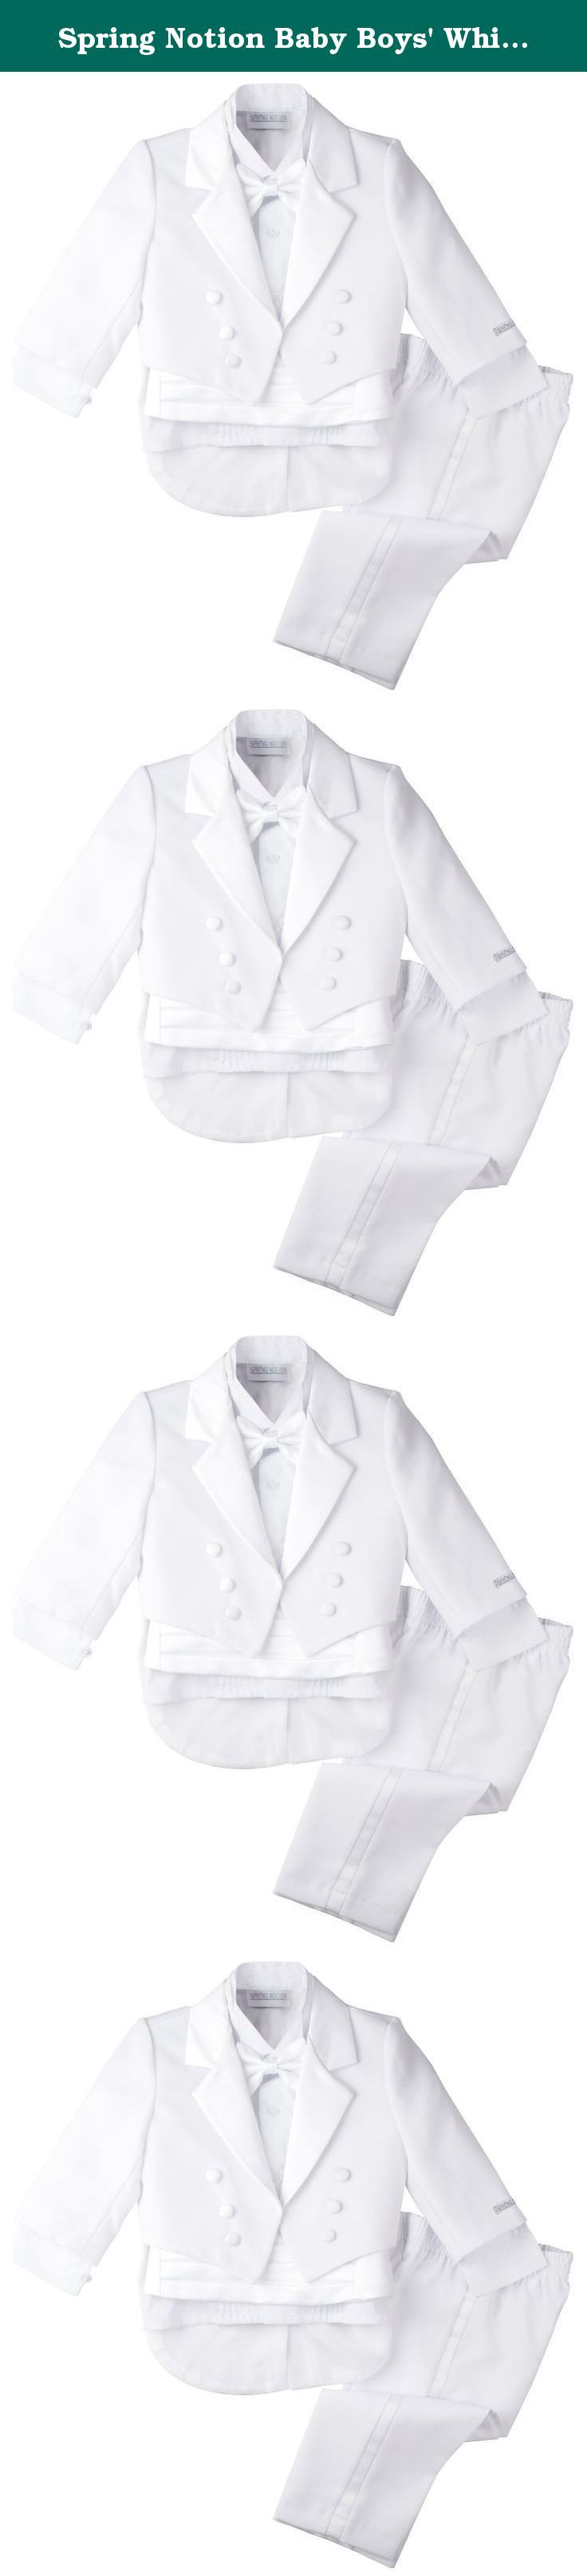 Spring Notion Baby Boys' White Classic Tuxedo with Tail Medium / 6-12 Months. This traditional boys tuxedo suit is perfect for Weddings, Church, Baptism, and any Special Occasions. Timeless design. It's a complete set consists of tuxedo, shirt, bow tie, cummerbund and pants.